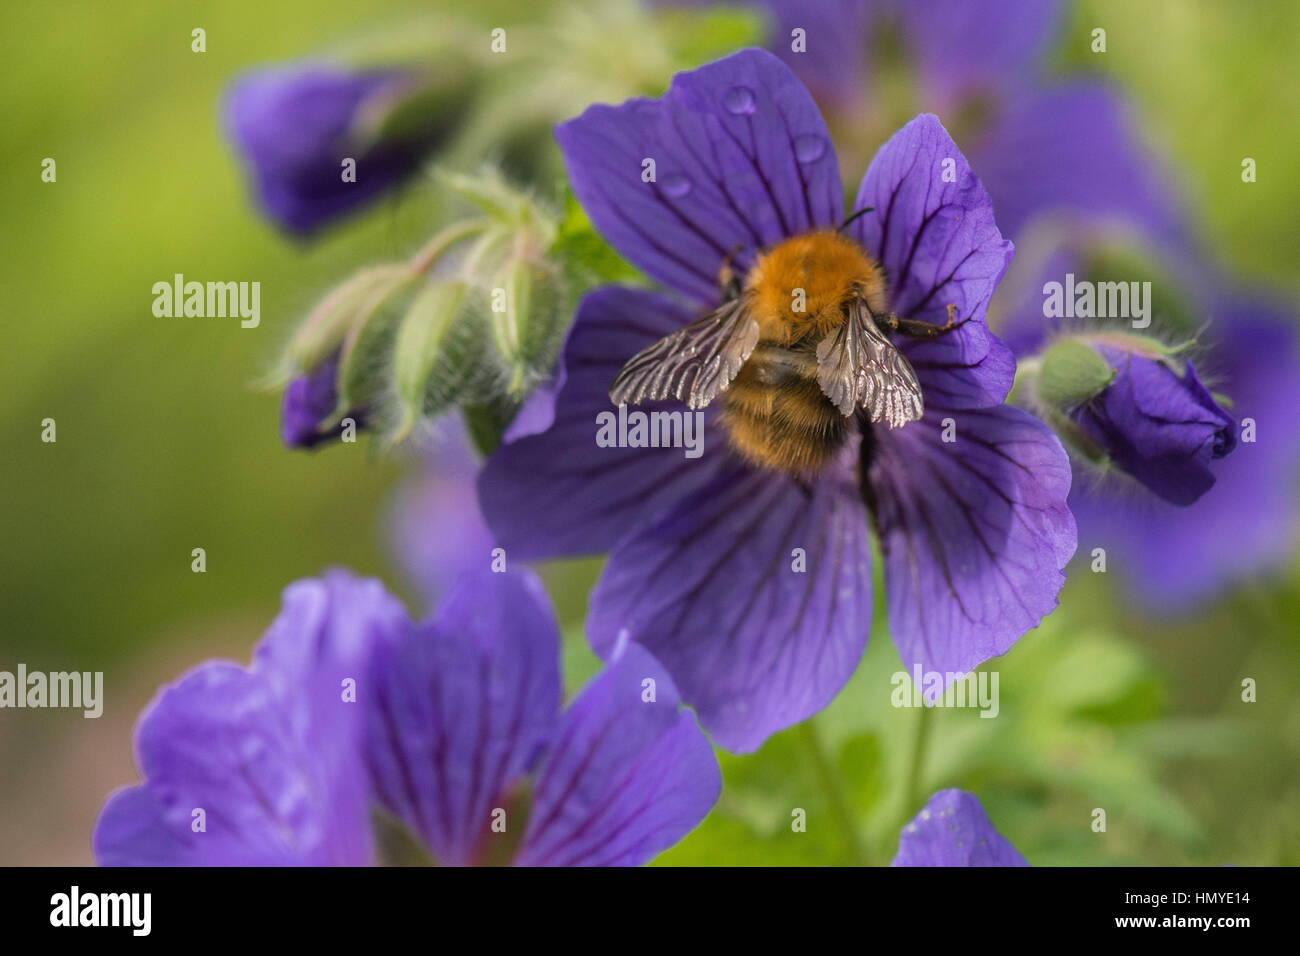 Bumblebee with ragged torn wings on purple geranium flower - Stock Image